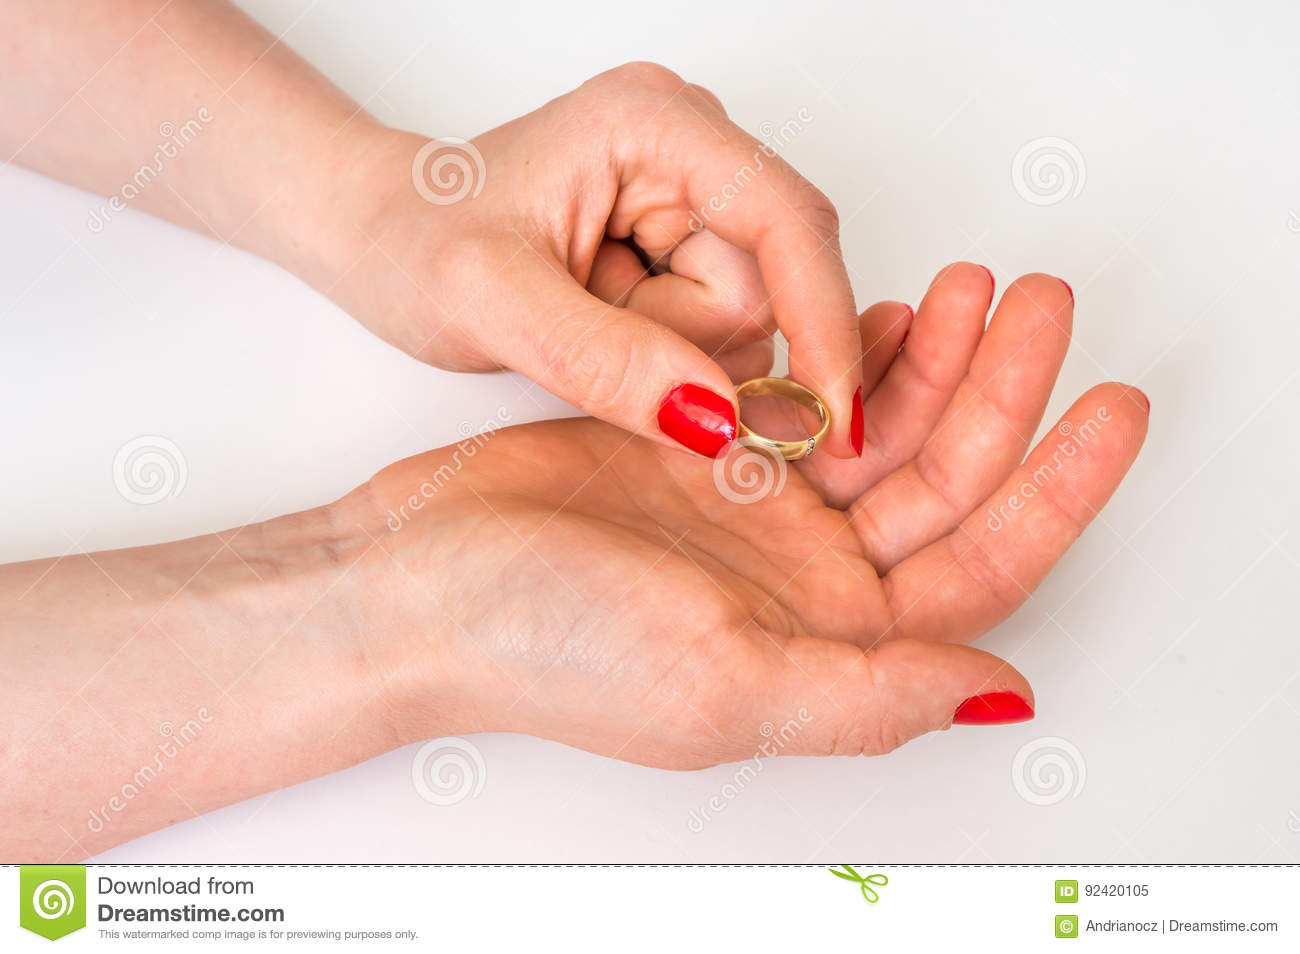 Which Hand Wedding Ring Female.Female Hand With Wedding Ring Divorce Concept Stock Image Image